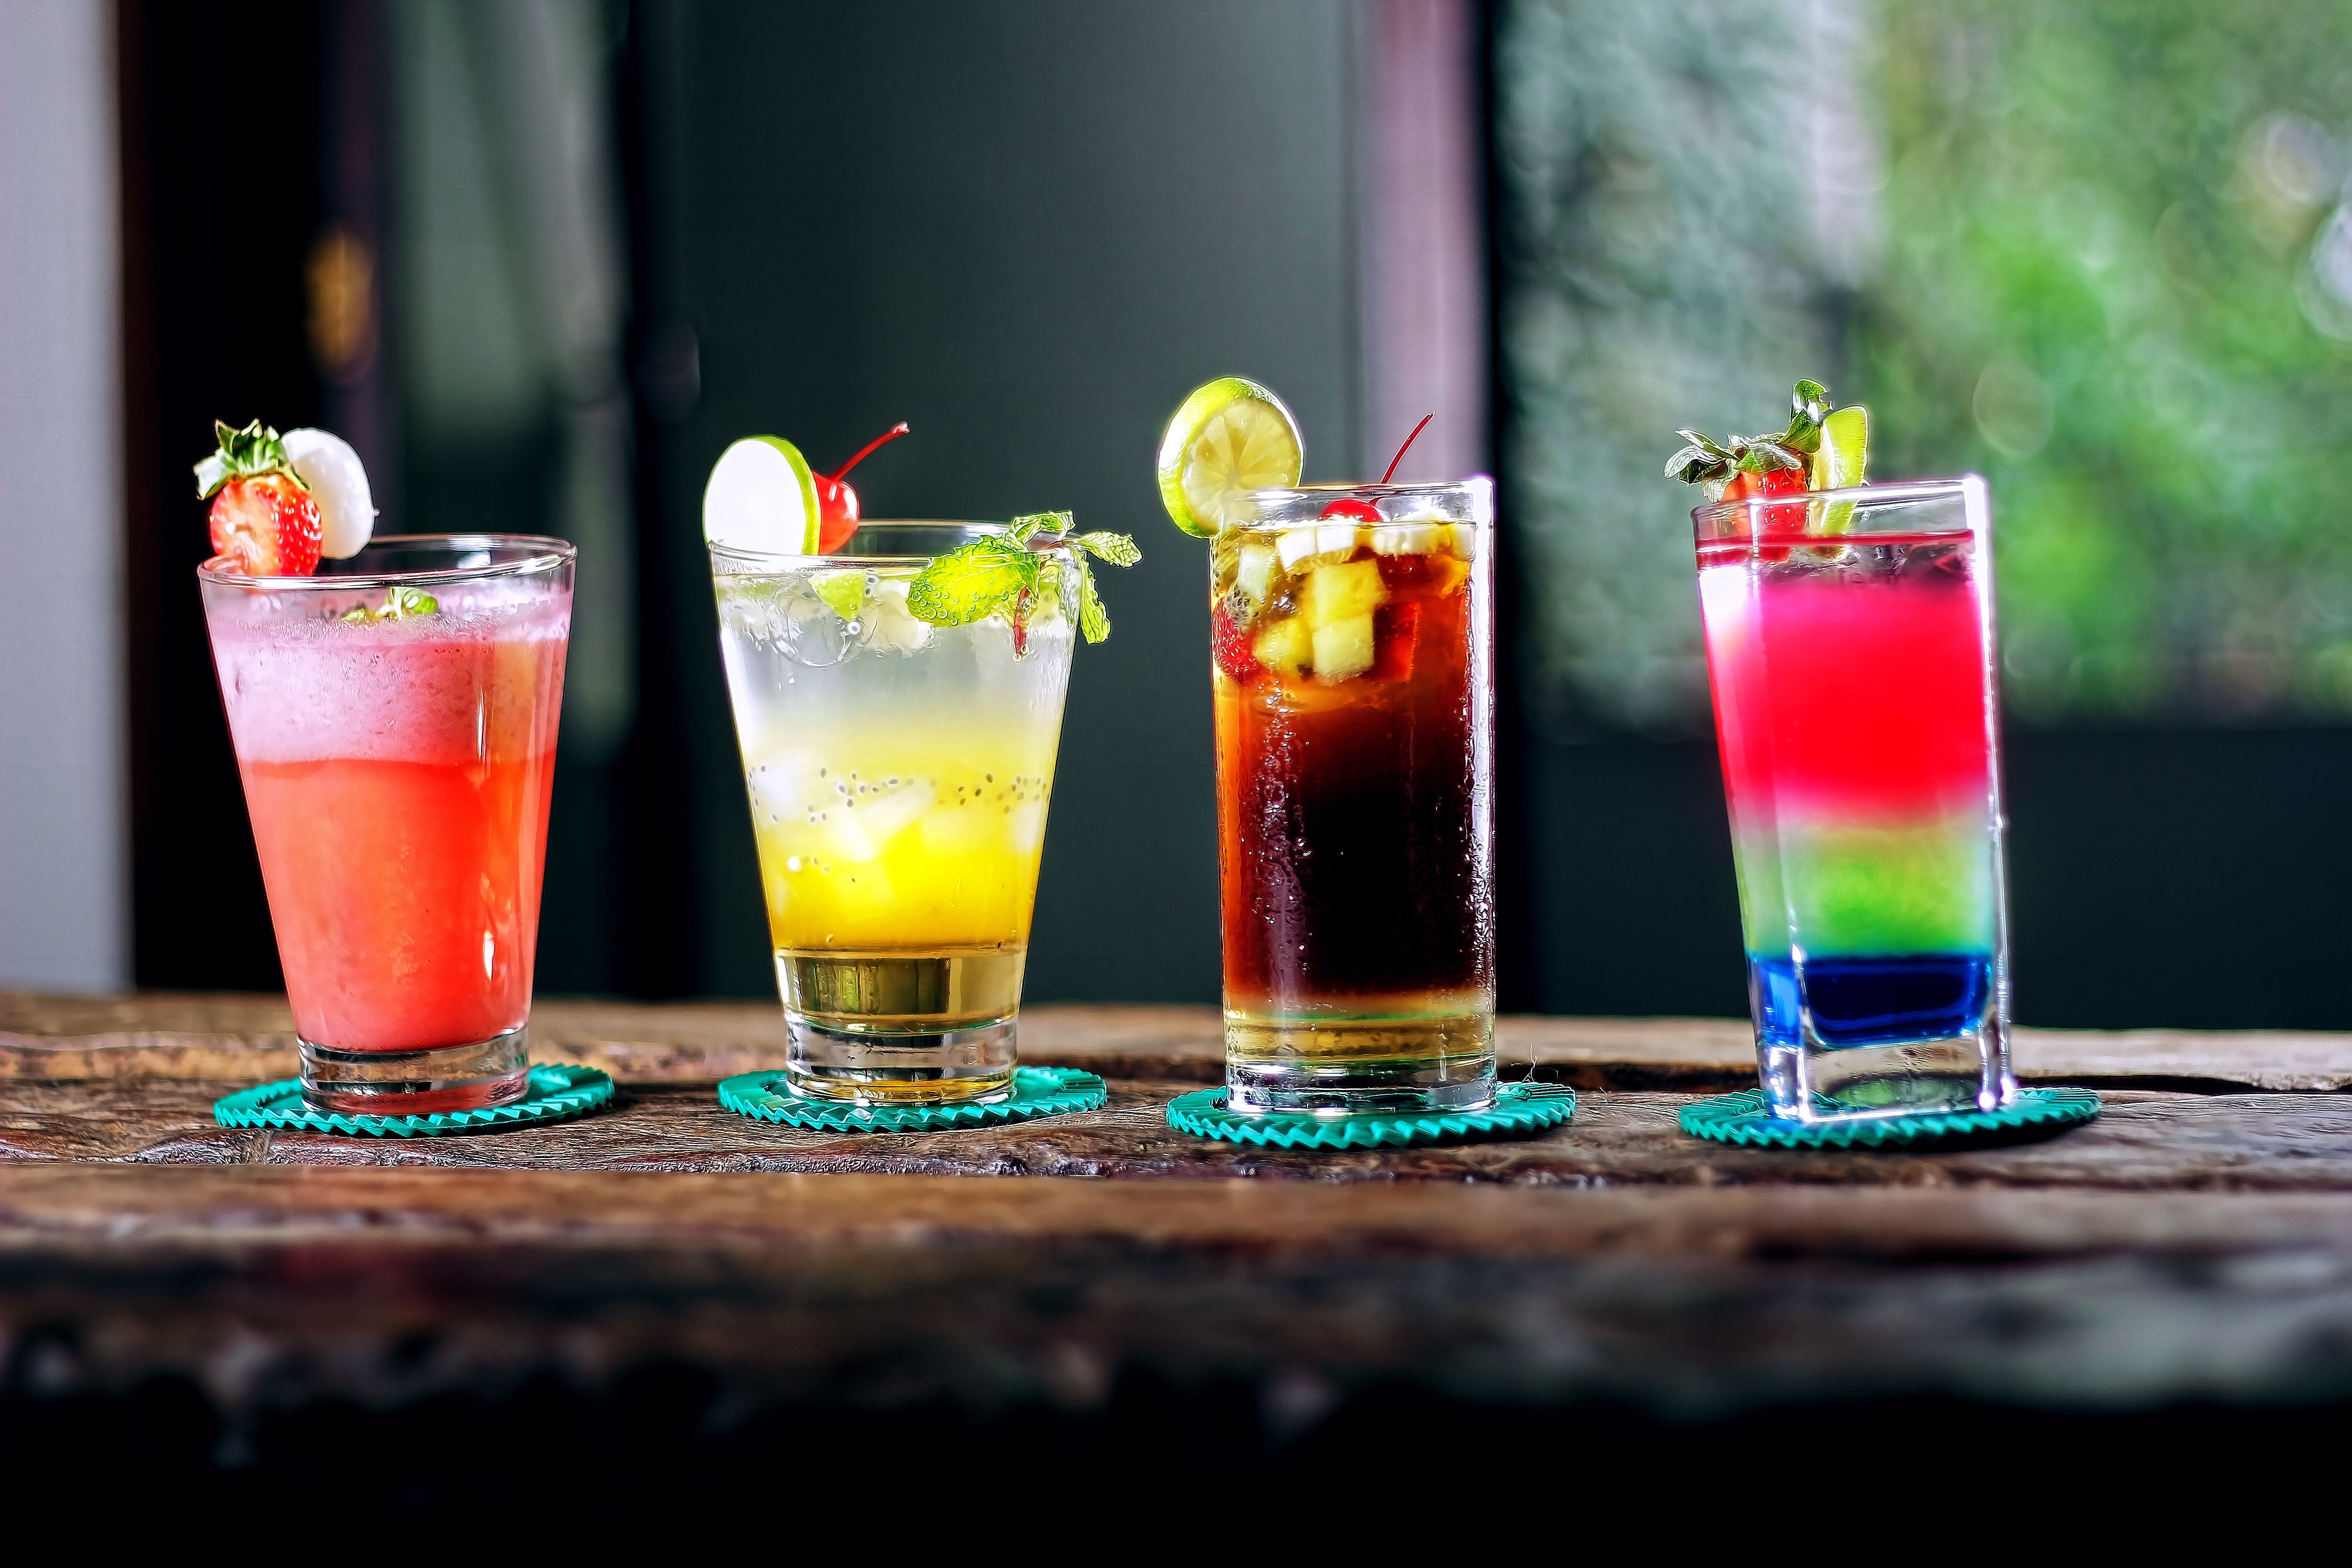 4 glasses of different drinks served on a wooden table.